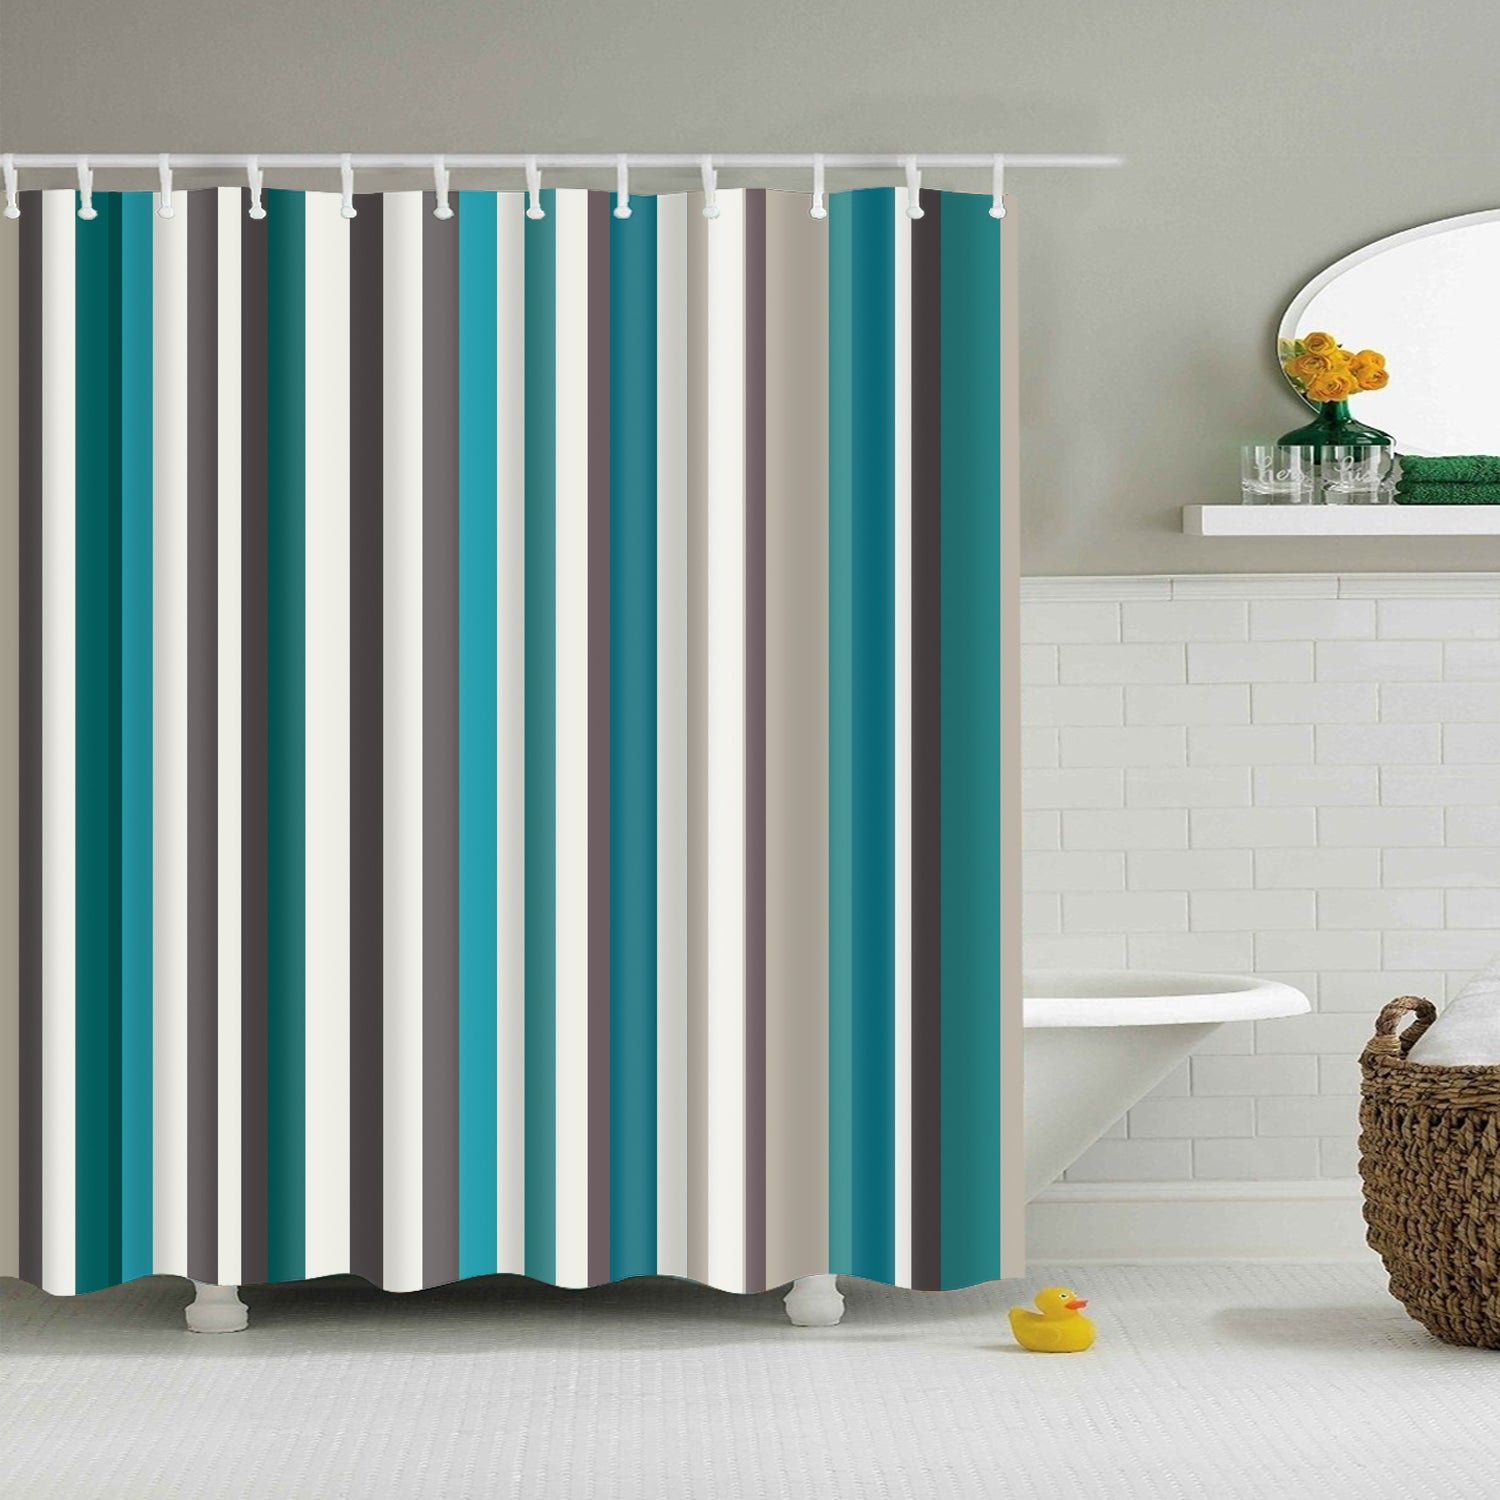 Retro Seamless Blue Stripes Shower Curtain